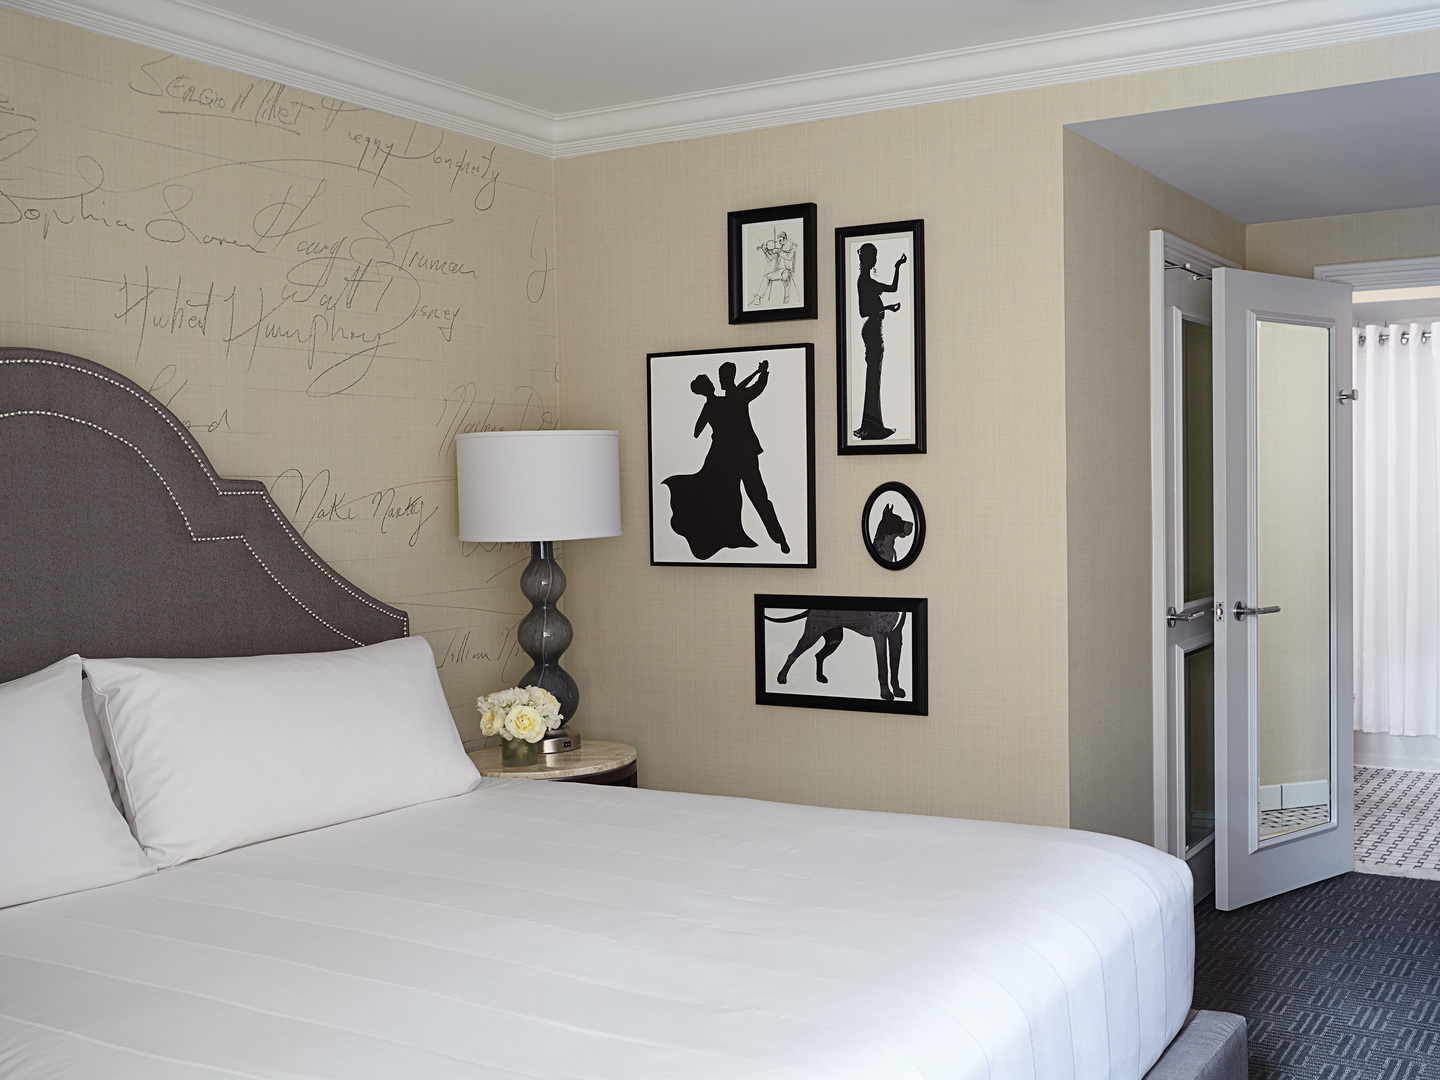 Marriott Vacation Club Pulse<span class='trademark'>®</span> at The Mayflower, Washington, D.C. Guestroom King. Marriott Vacation Club Pulse<span class='trademark'>®</span> at The Mayflower, Washington, D.C. is located in Washington, D.C. United States.